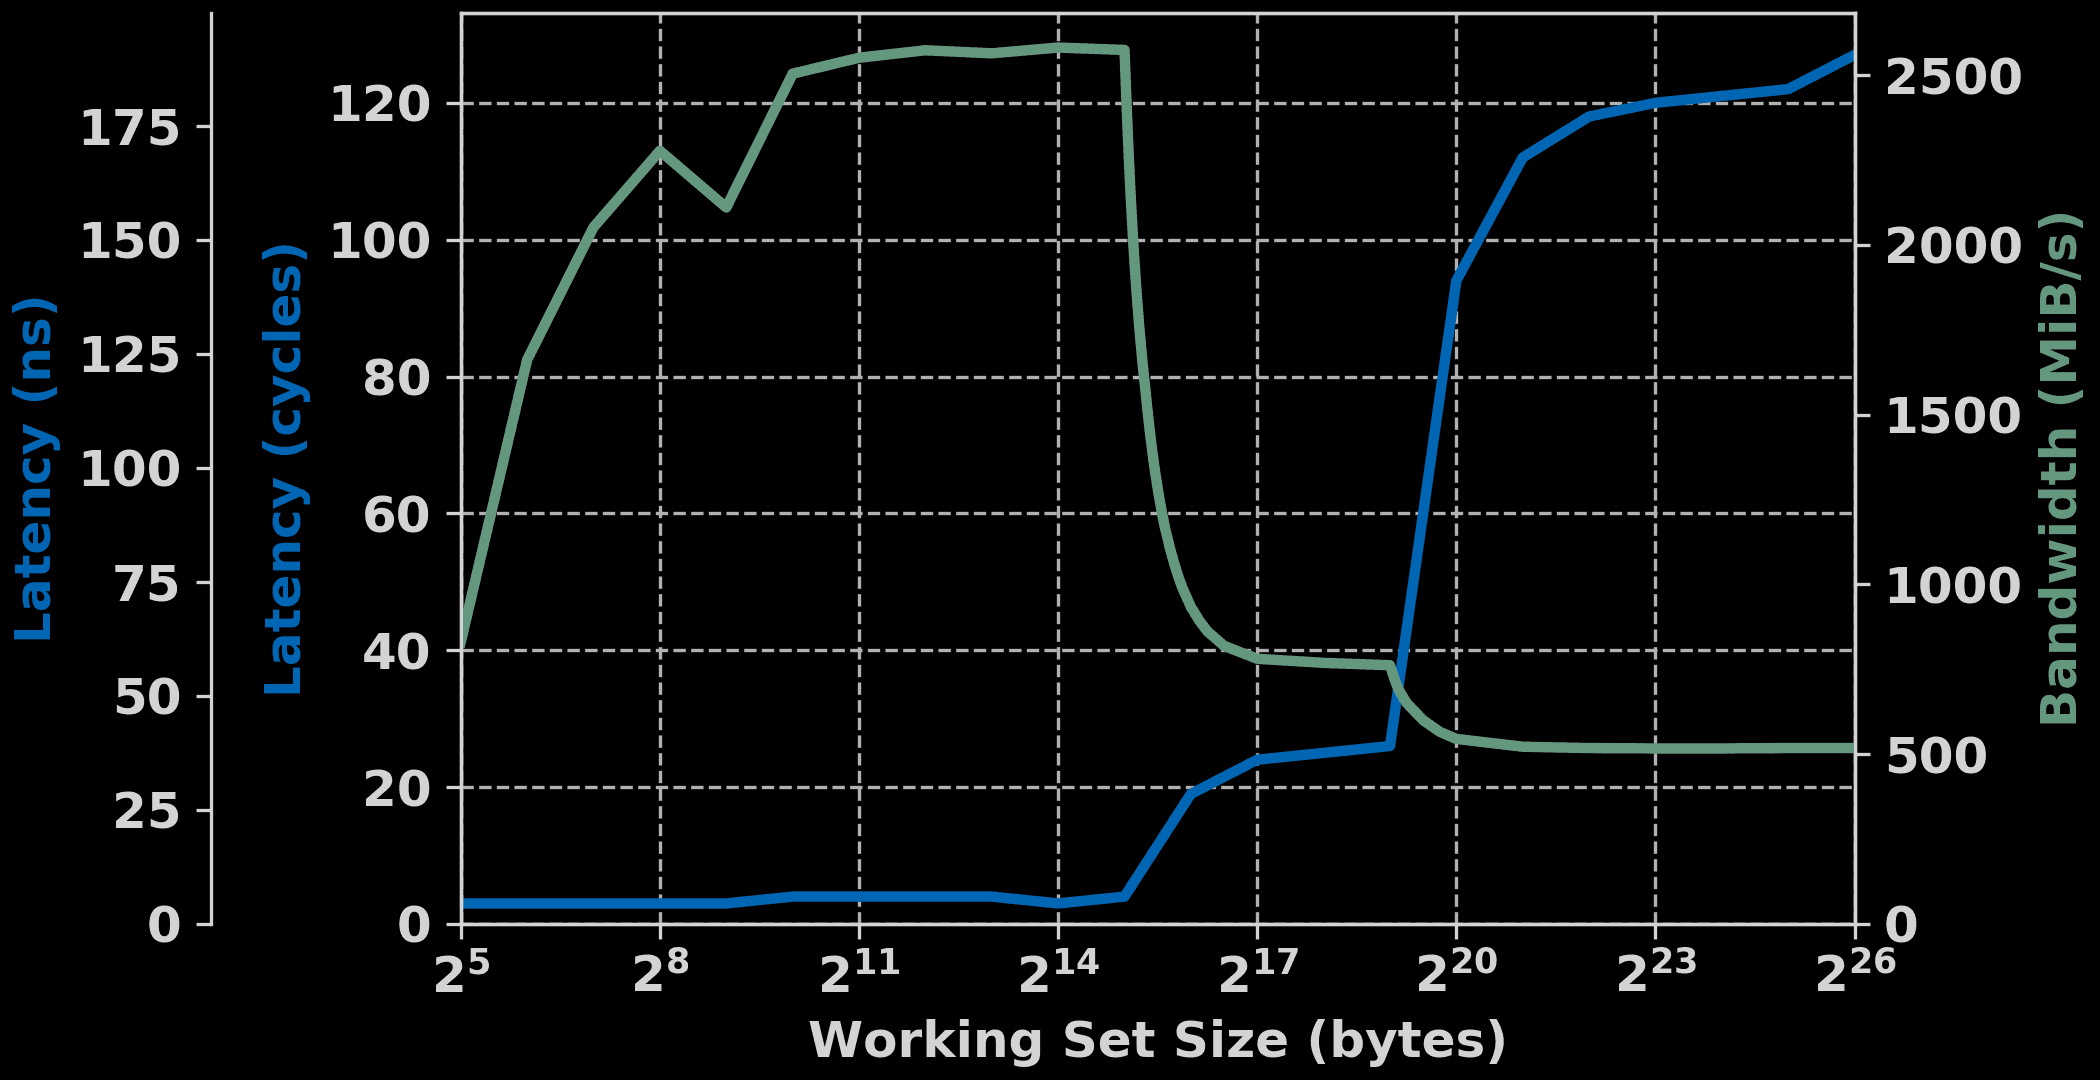 Plot of a MicroBlaze system memory access latency and memory bandwidth versus the working set size.